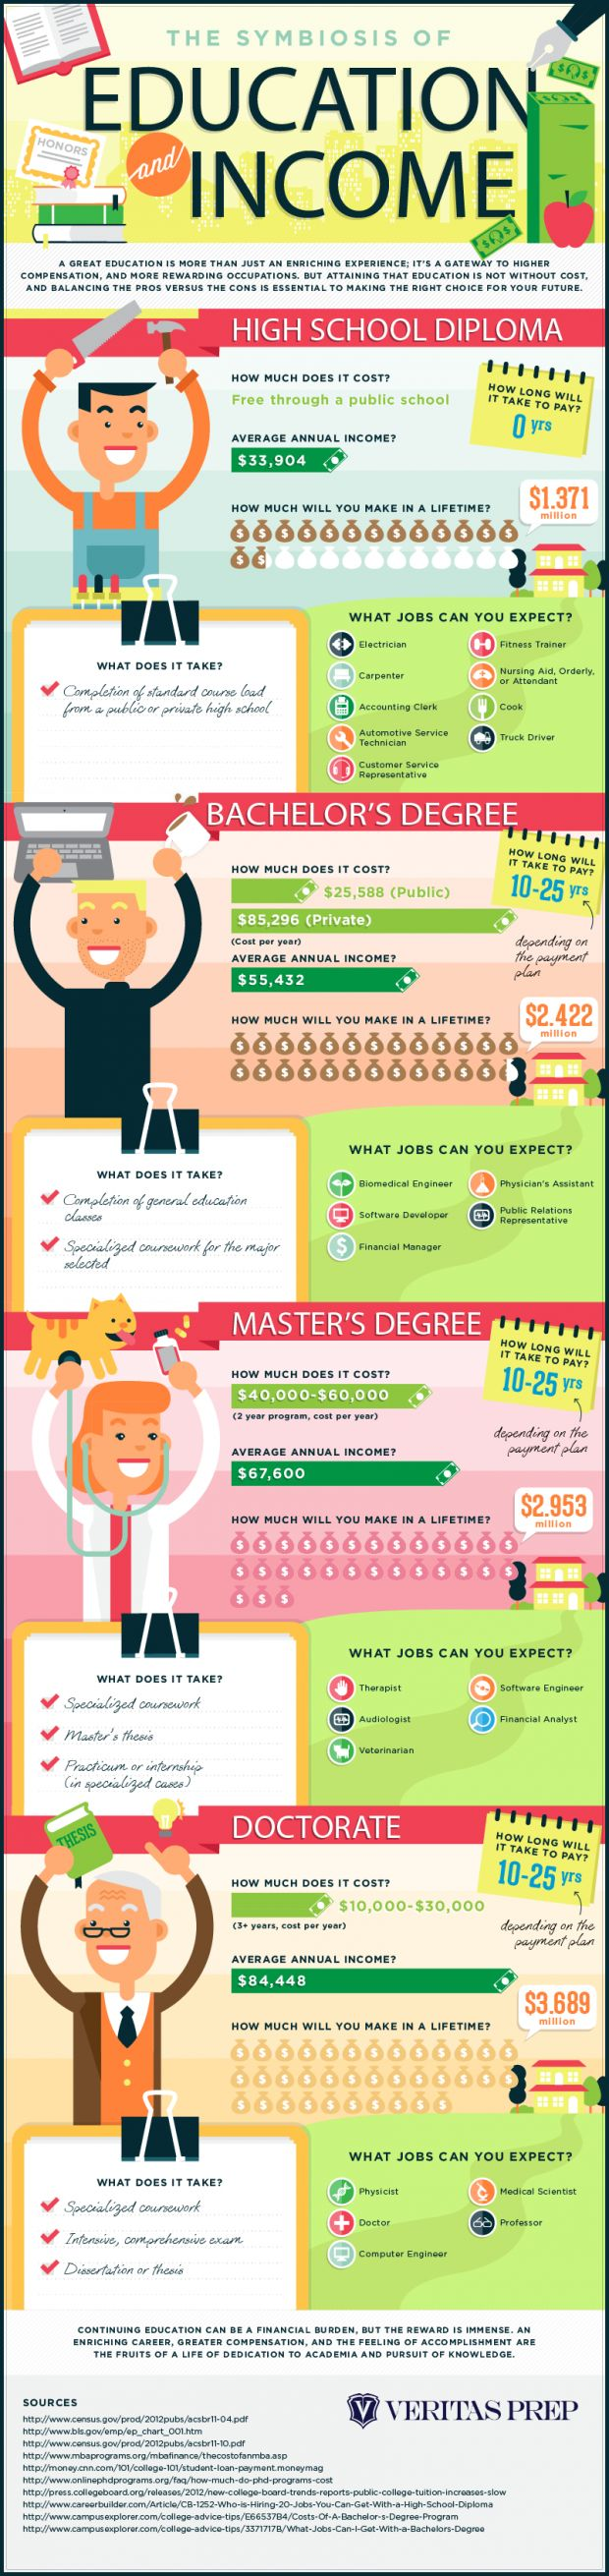 62 best education infographics images on pinterest info graphics the symbiosis of education and income infographic fandeluxe Images